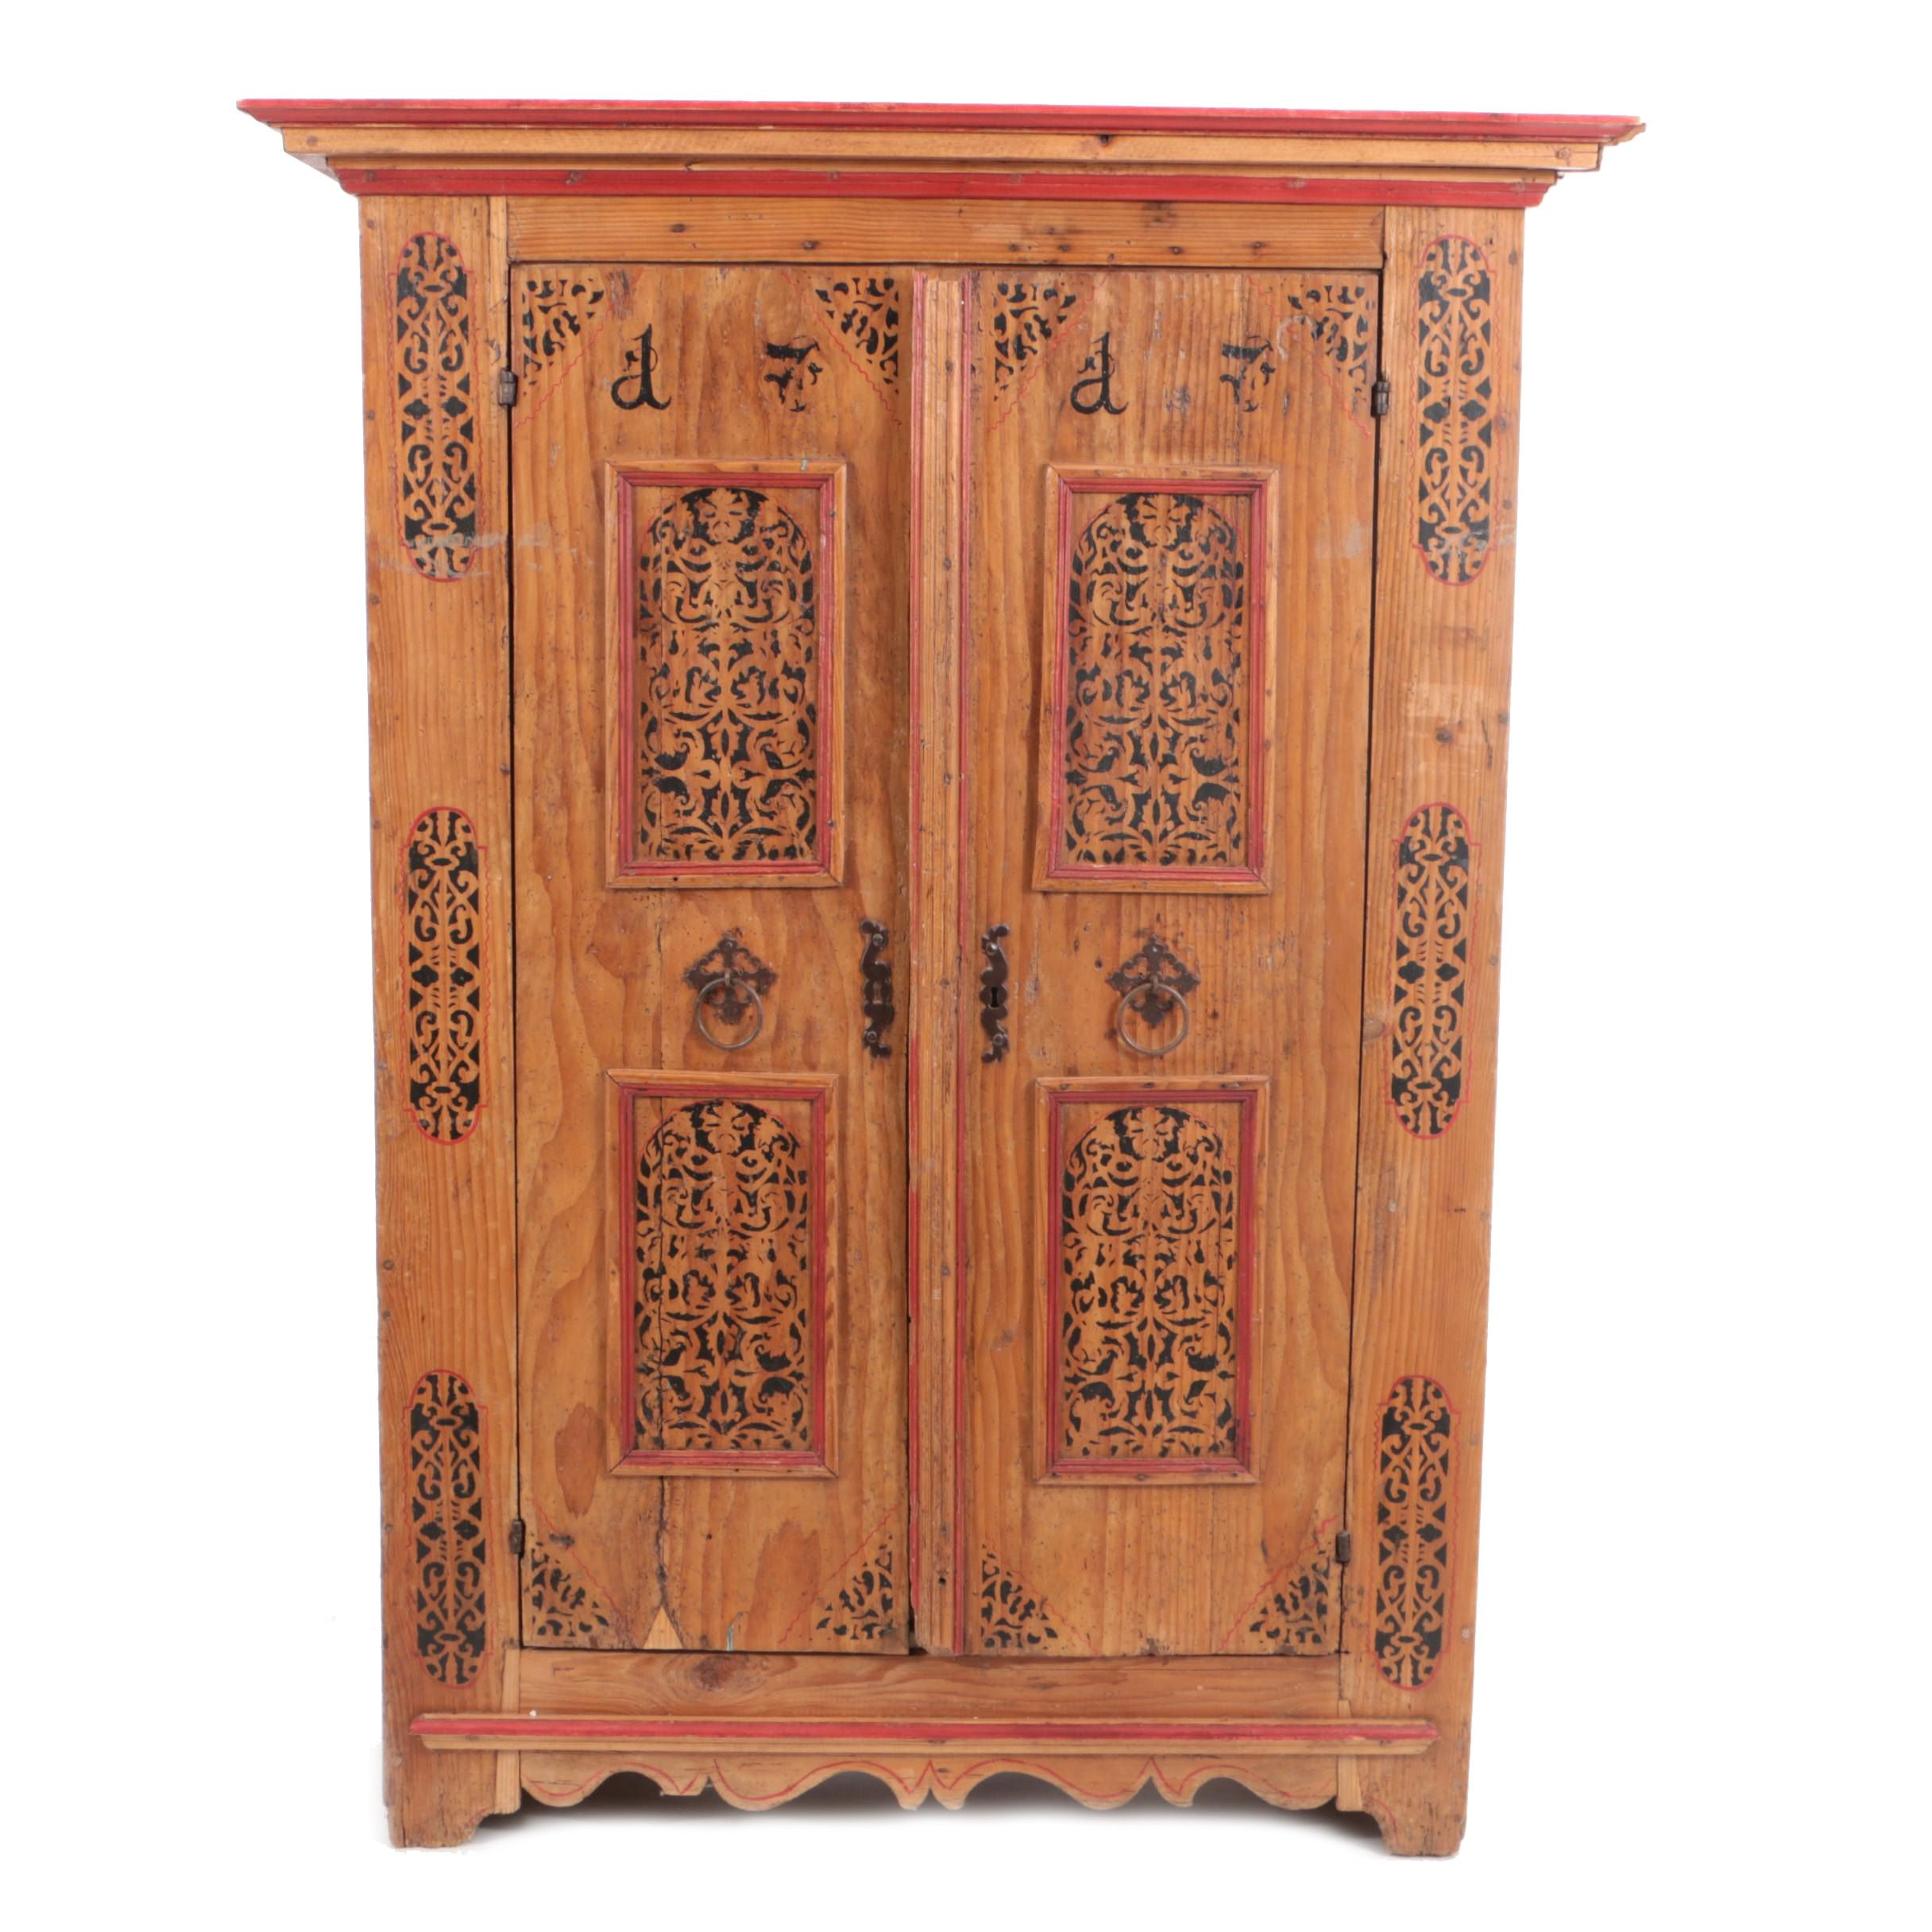 20th Century Spanish Colonial Style Pine Wardrobe with Stencil Decoration